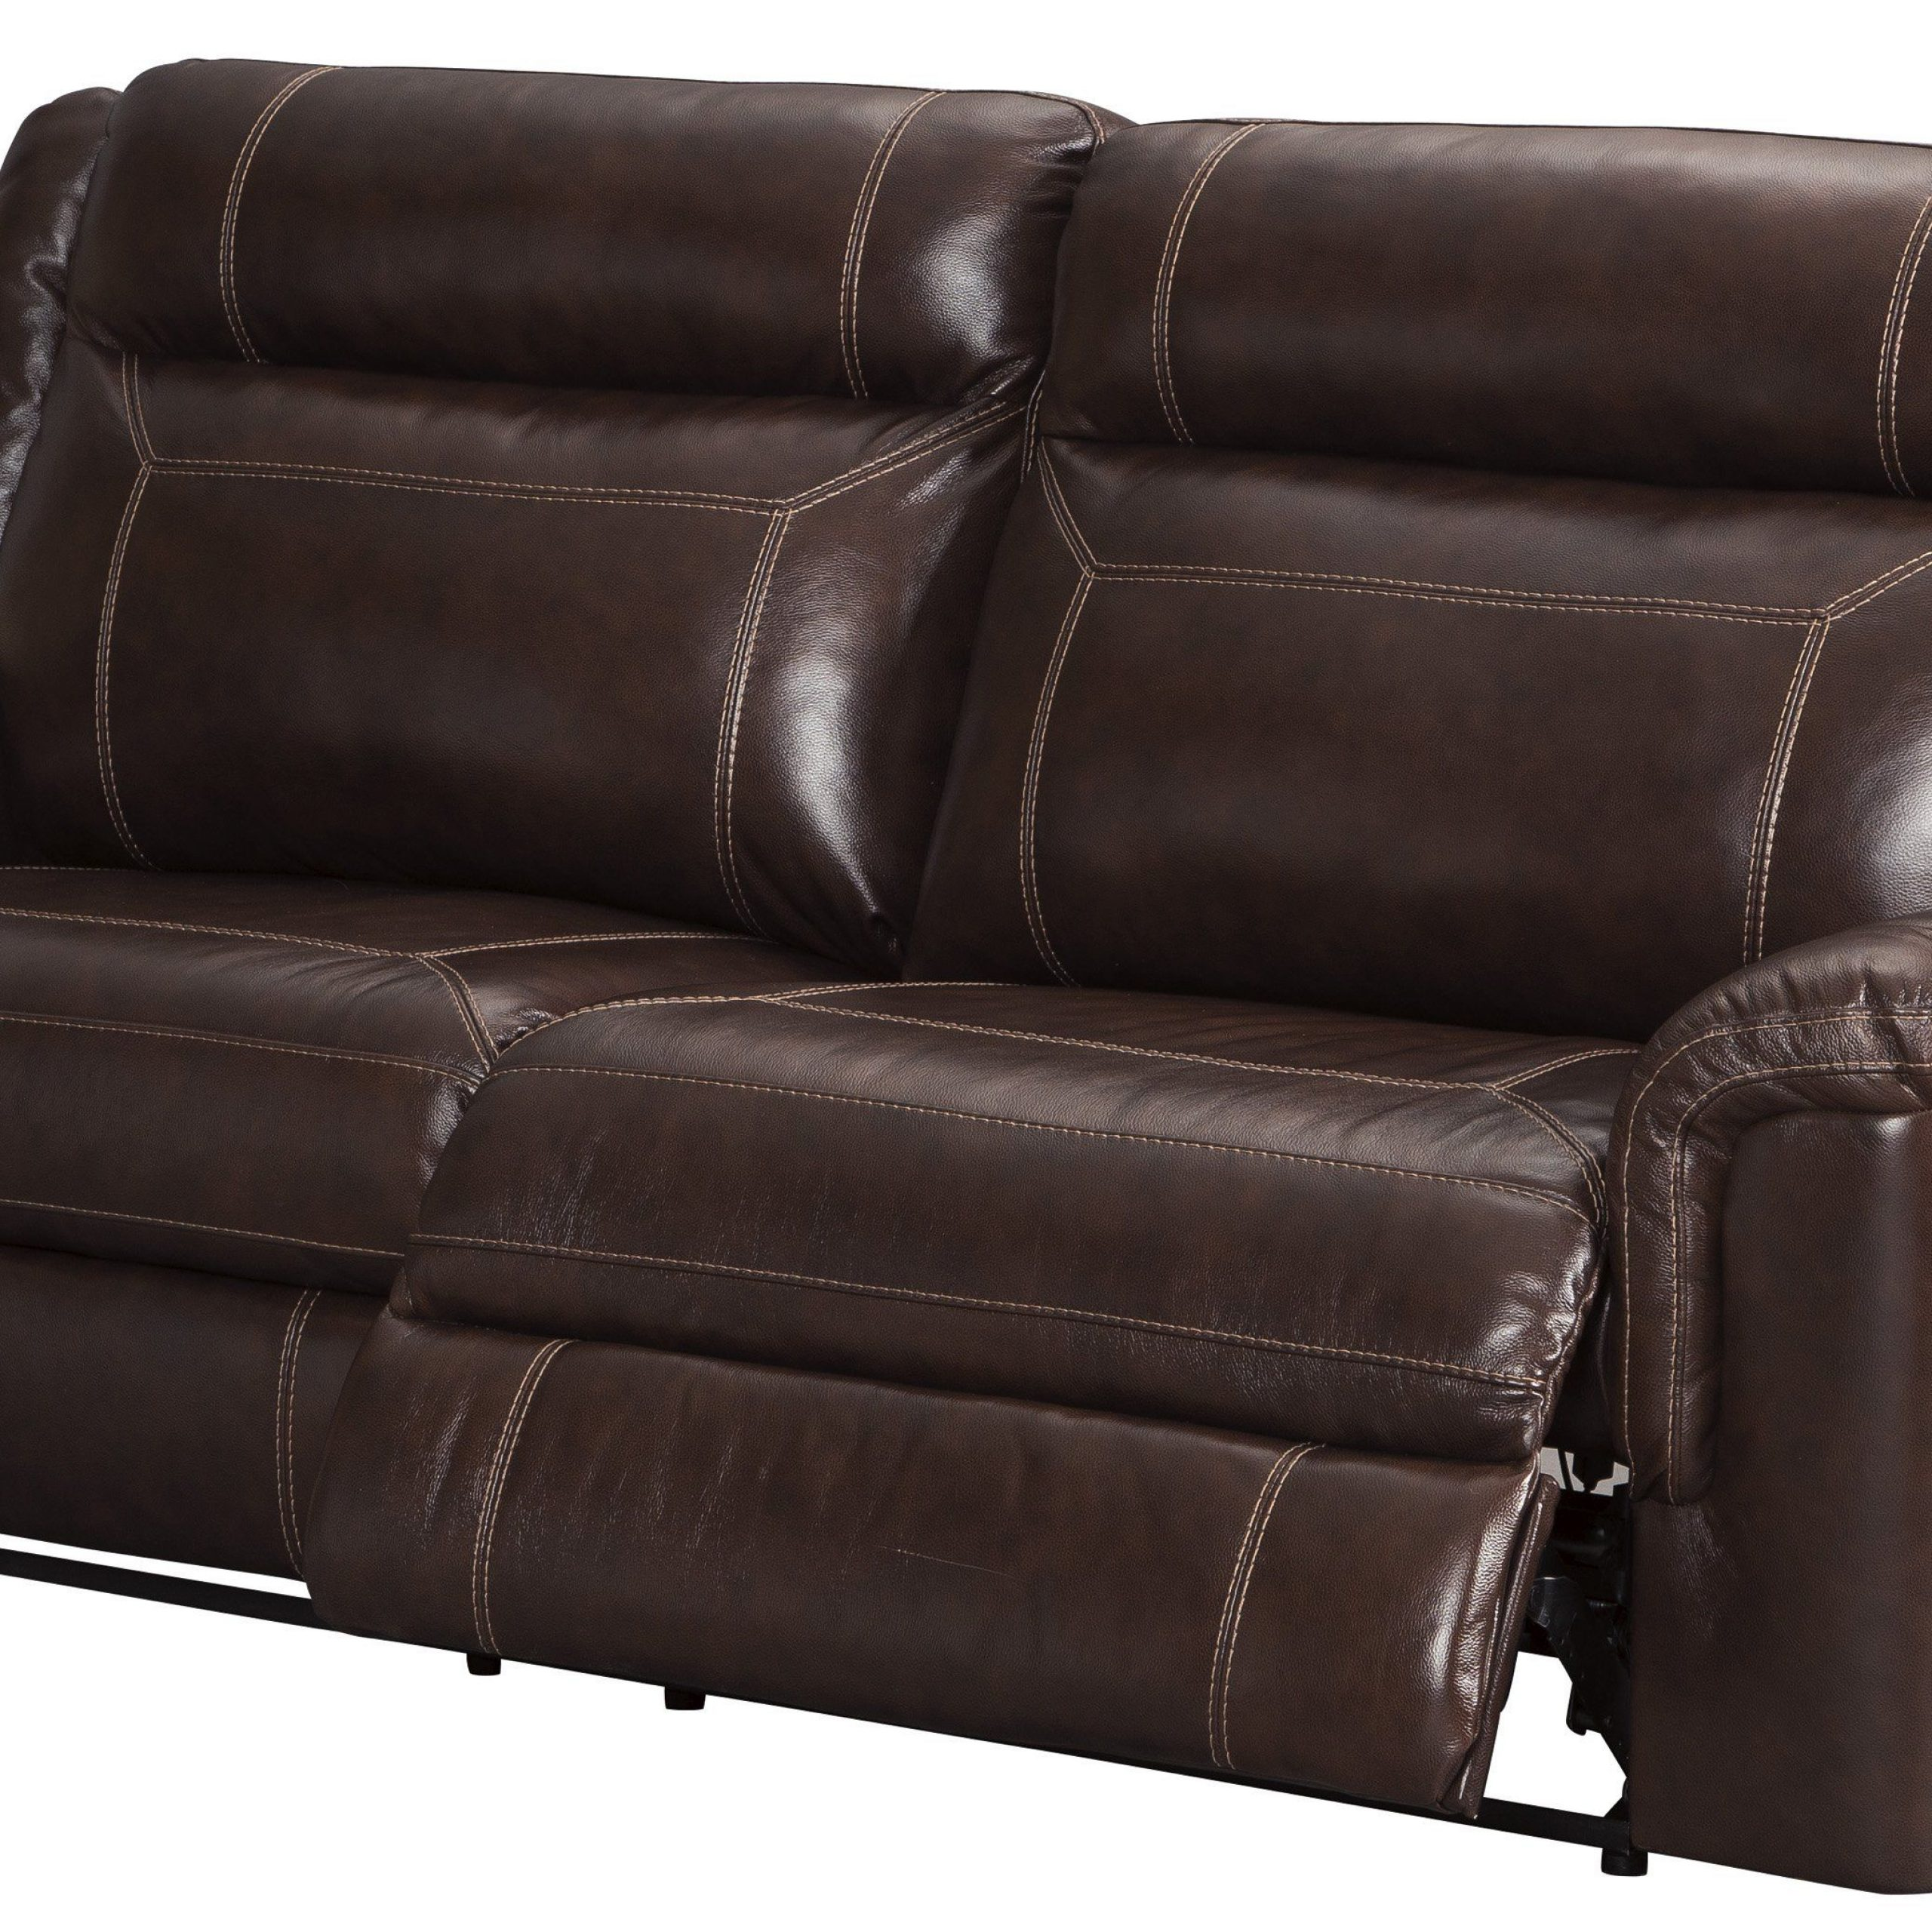 Genuine Leather Reclining Sofa And Loveseat With Well Liked Marco Leather Power Reclining Sofas (View 4 of 15)